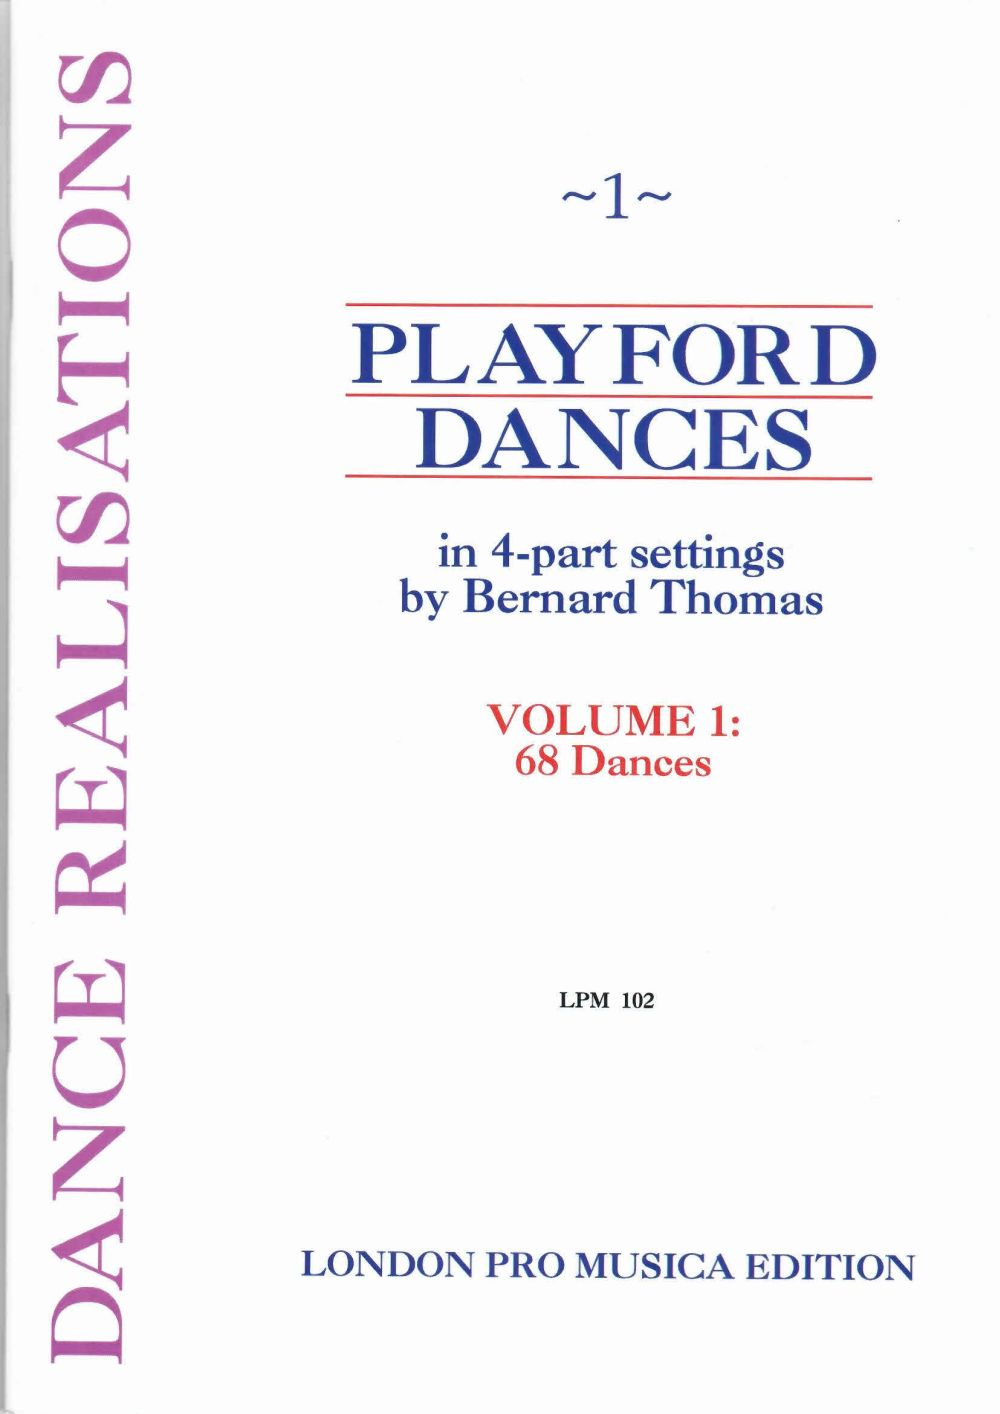 PLAYFORD DANCES VOL 1 - QUATRE INSTRUMENTS